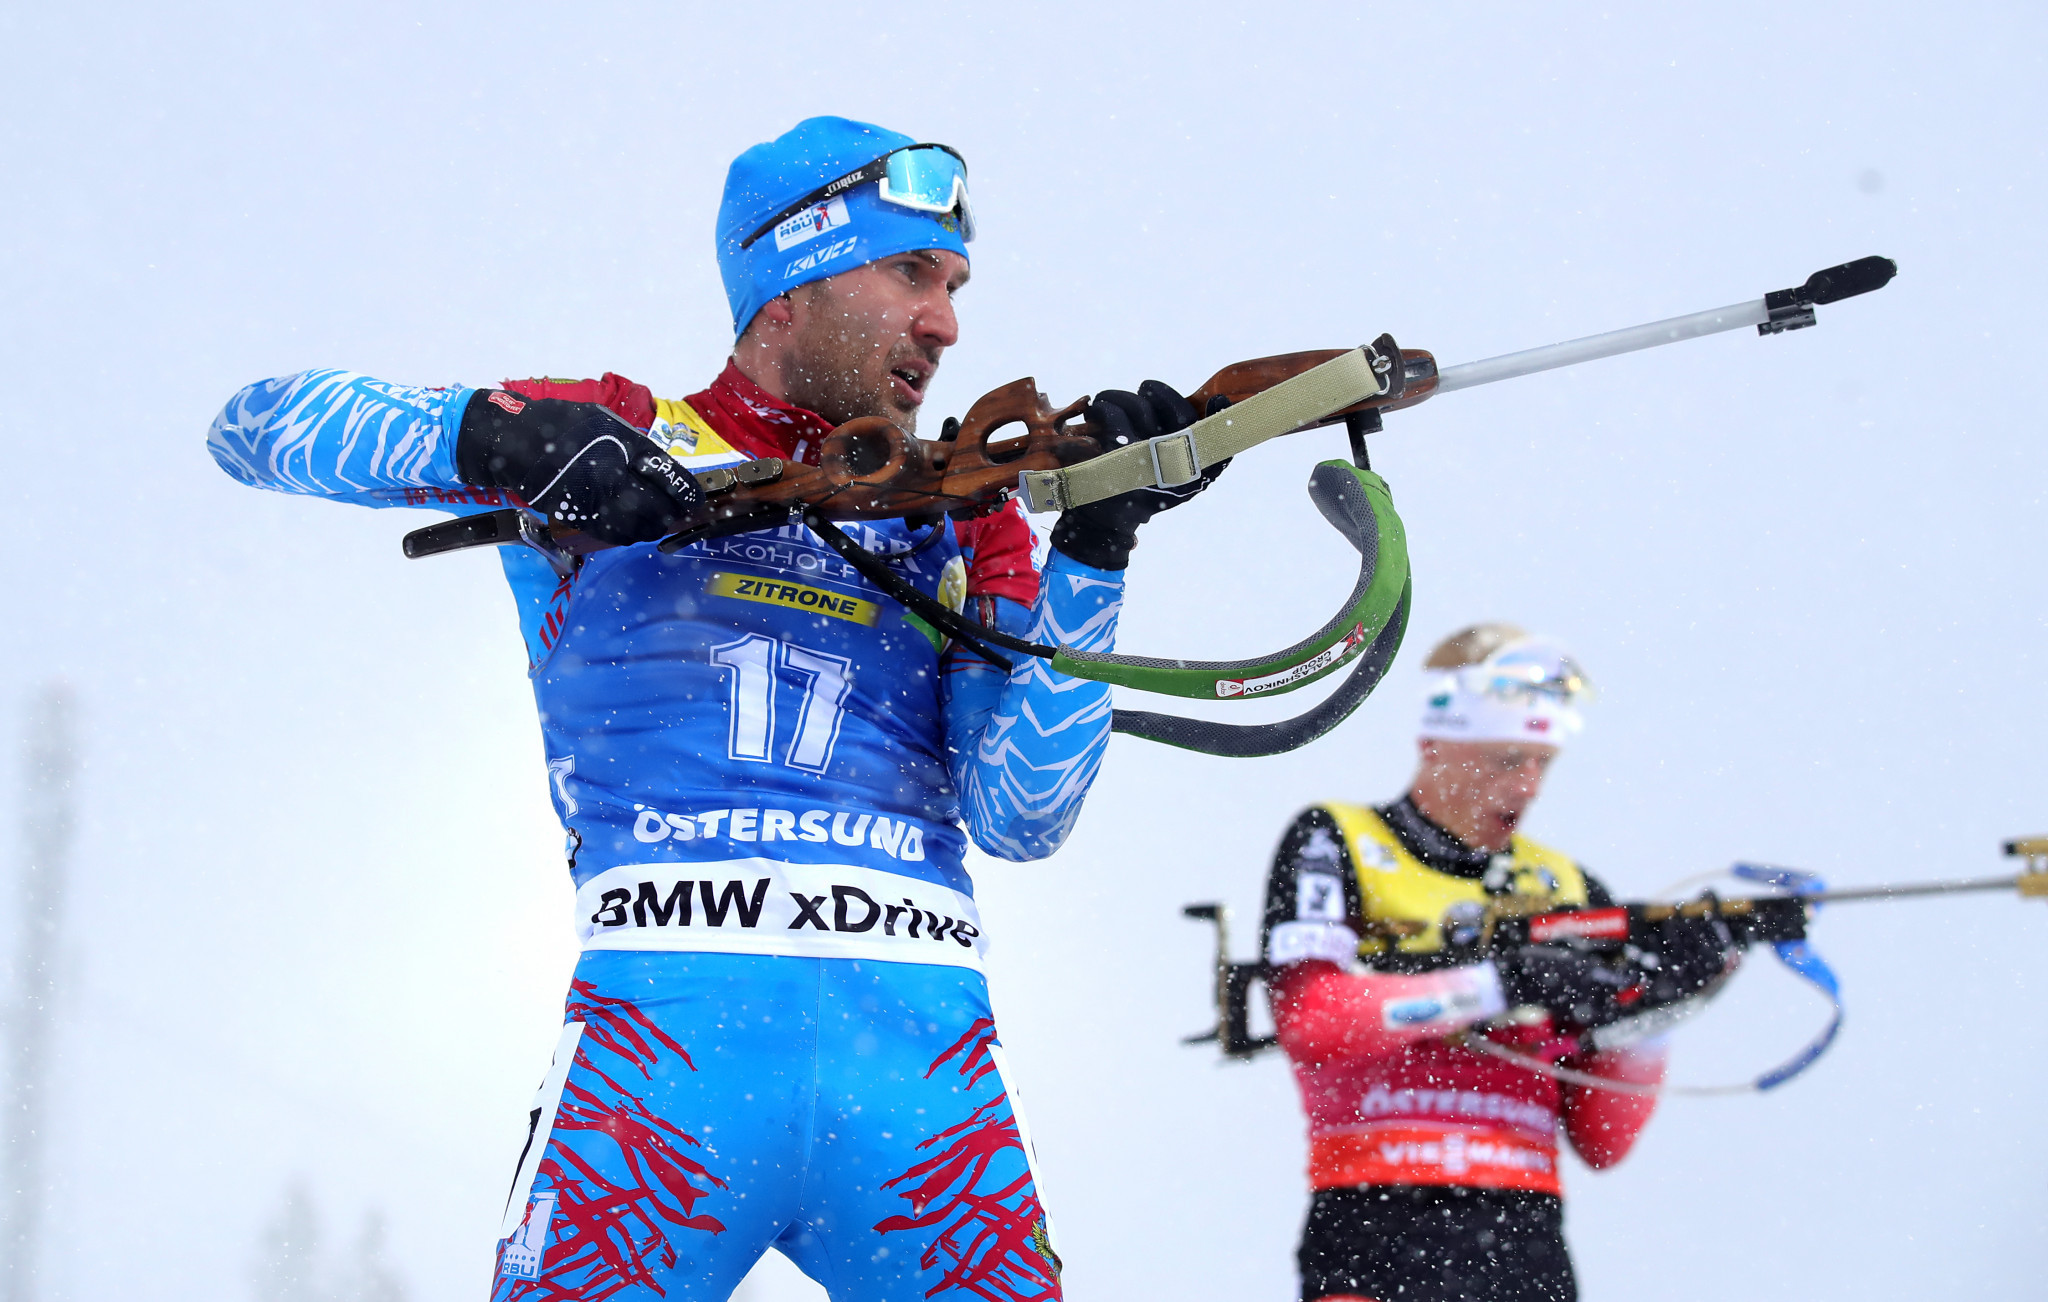 Garanichev signs contract to compete with Russian Biathlon Union